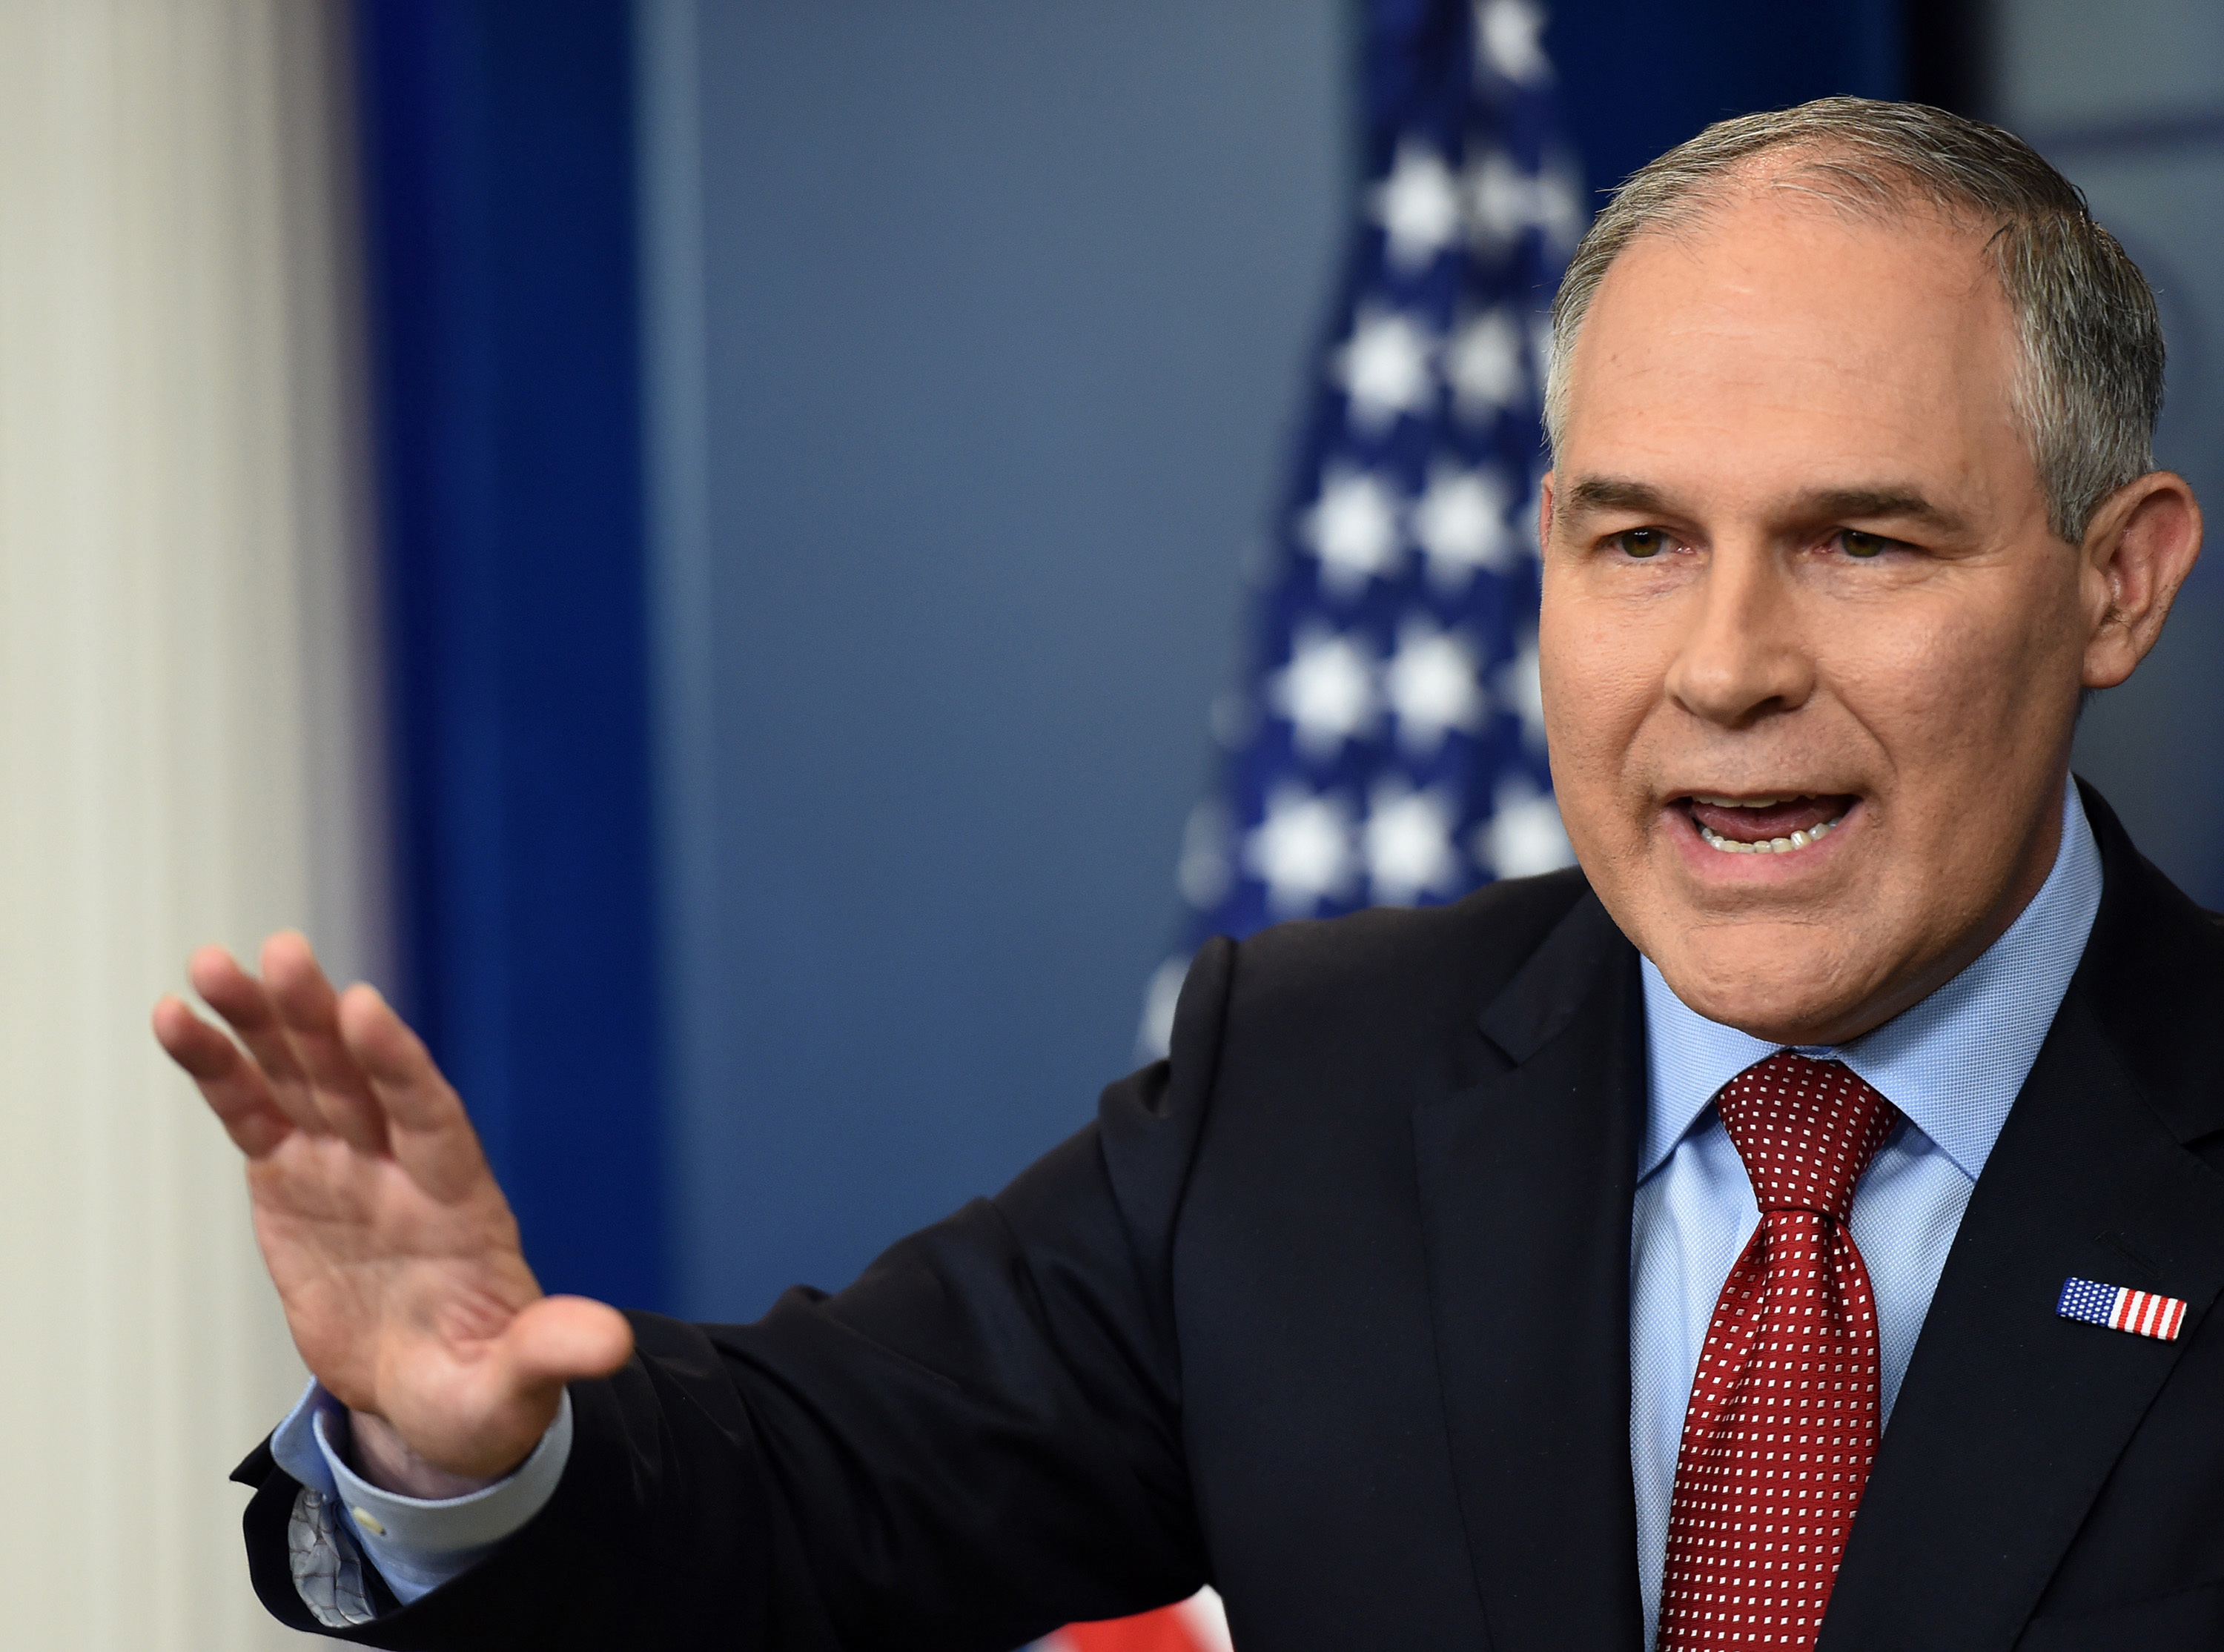 EPA Administrator Scott Pruitt speaks on June 2, 2017, during a briefing in the Brady Briefing Room at the White House in Washington D.C. (Molly Riley/Sipa USA/TNS)